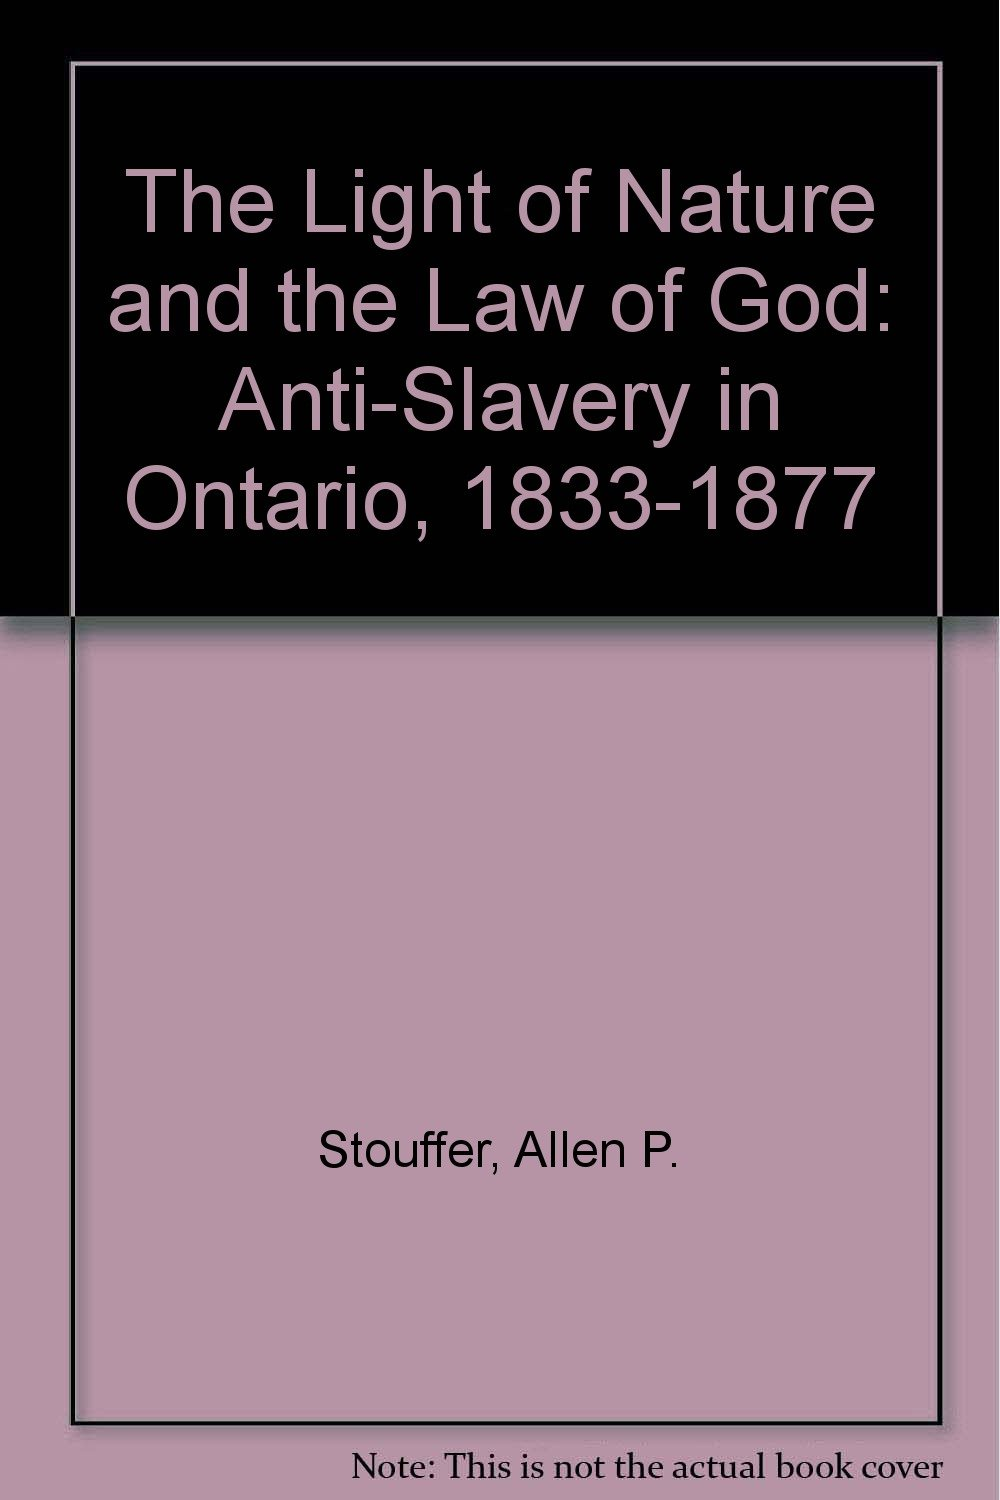 The Light of Nature and the Law of God: Antislavery in Ontario, 1833-1877